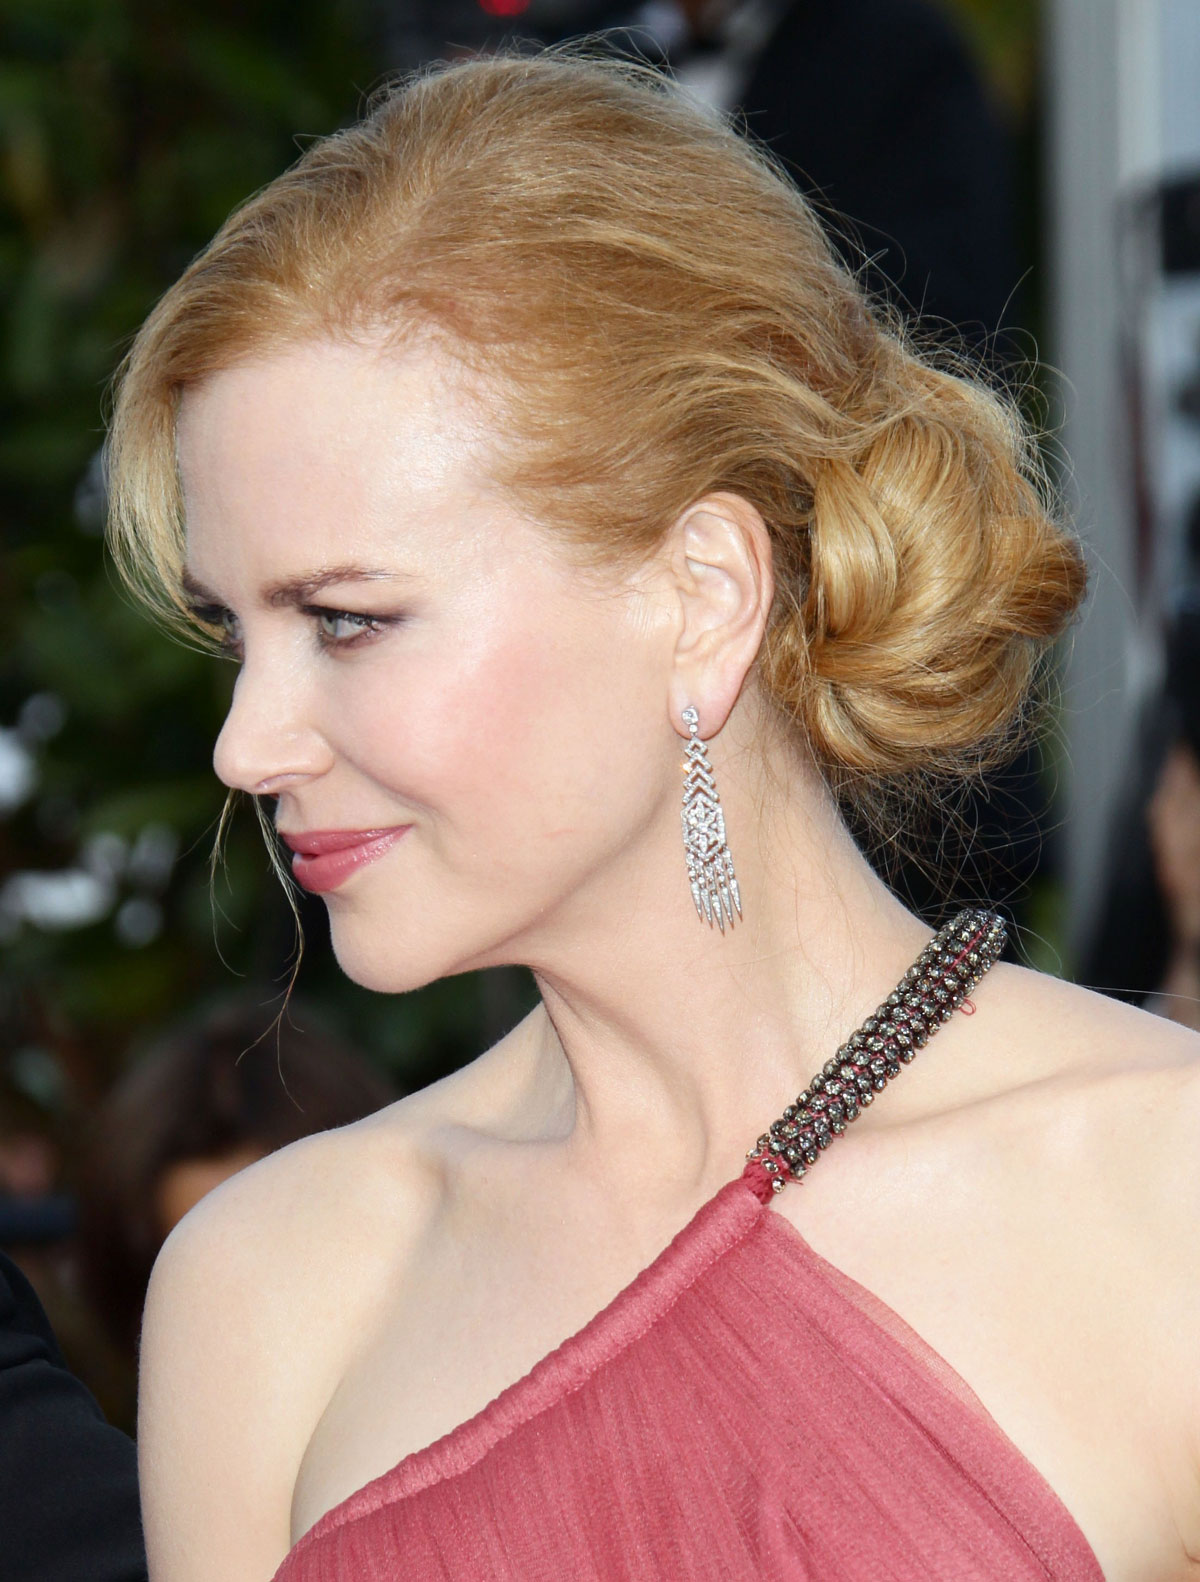 Nicole Kidman attends the The Paperboy premiere during